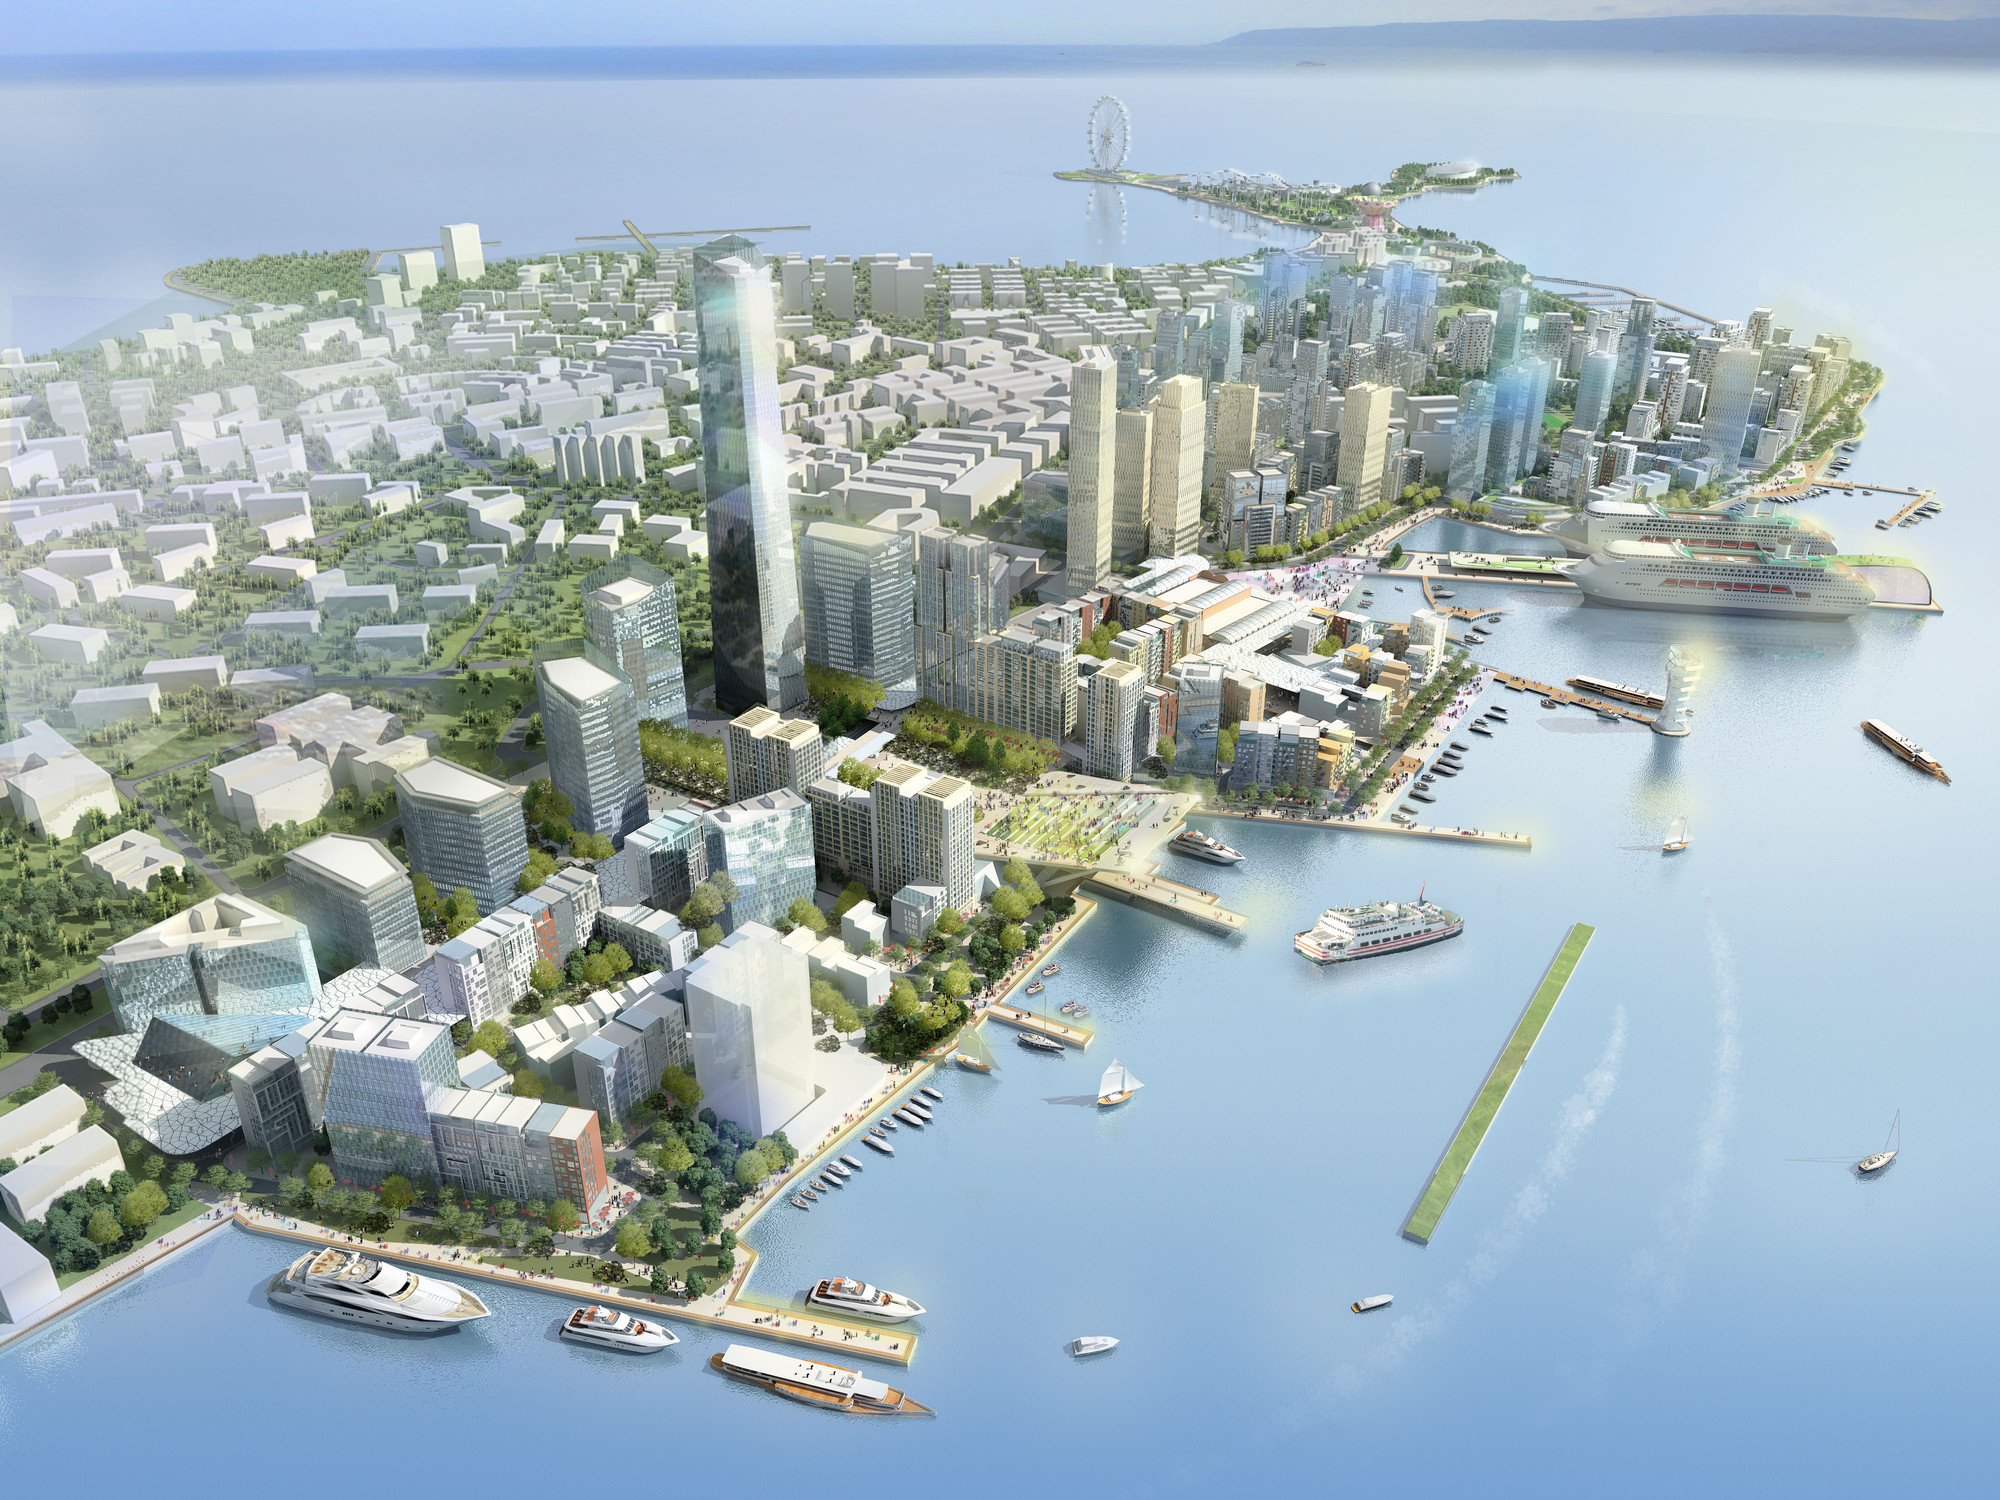 Qingdao Harborfront Redevelopment Proposal / EE&K a Perkins Eastman Company, Courtesy of EE&K a Perkins Eastman Company